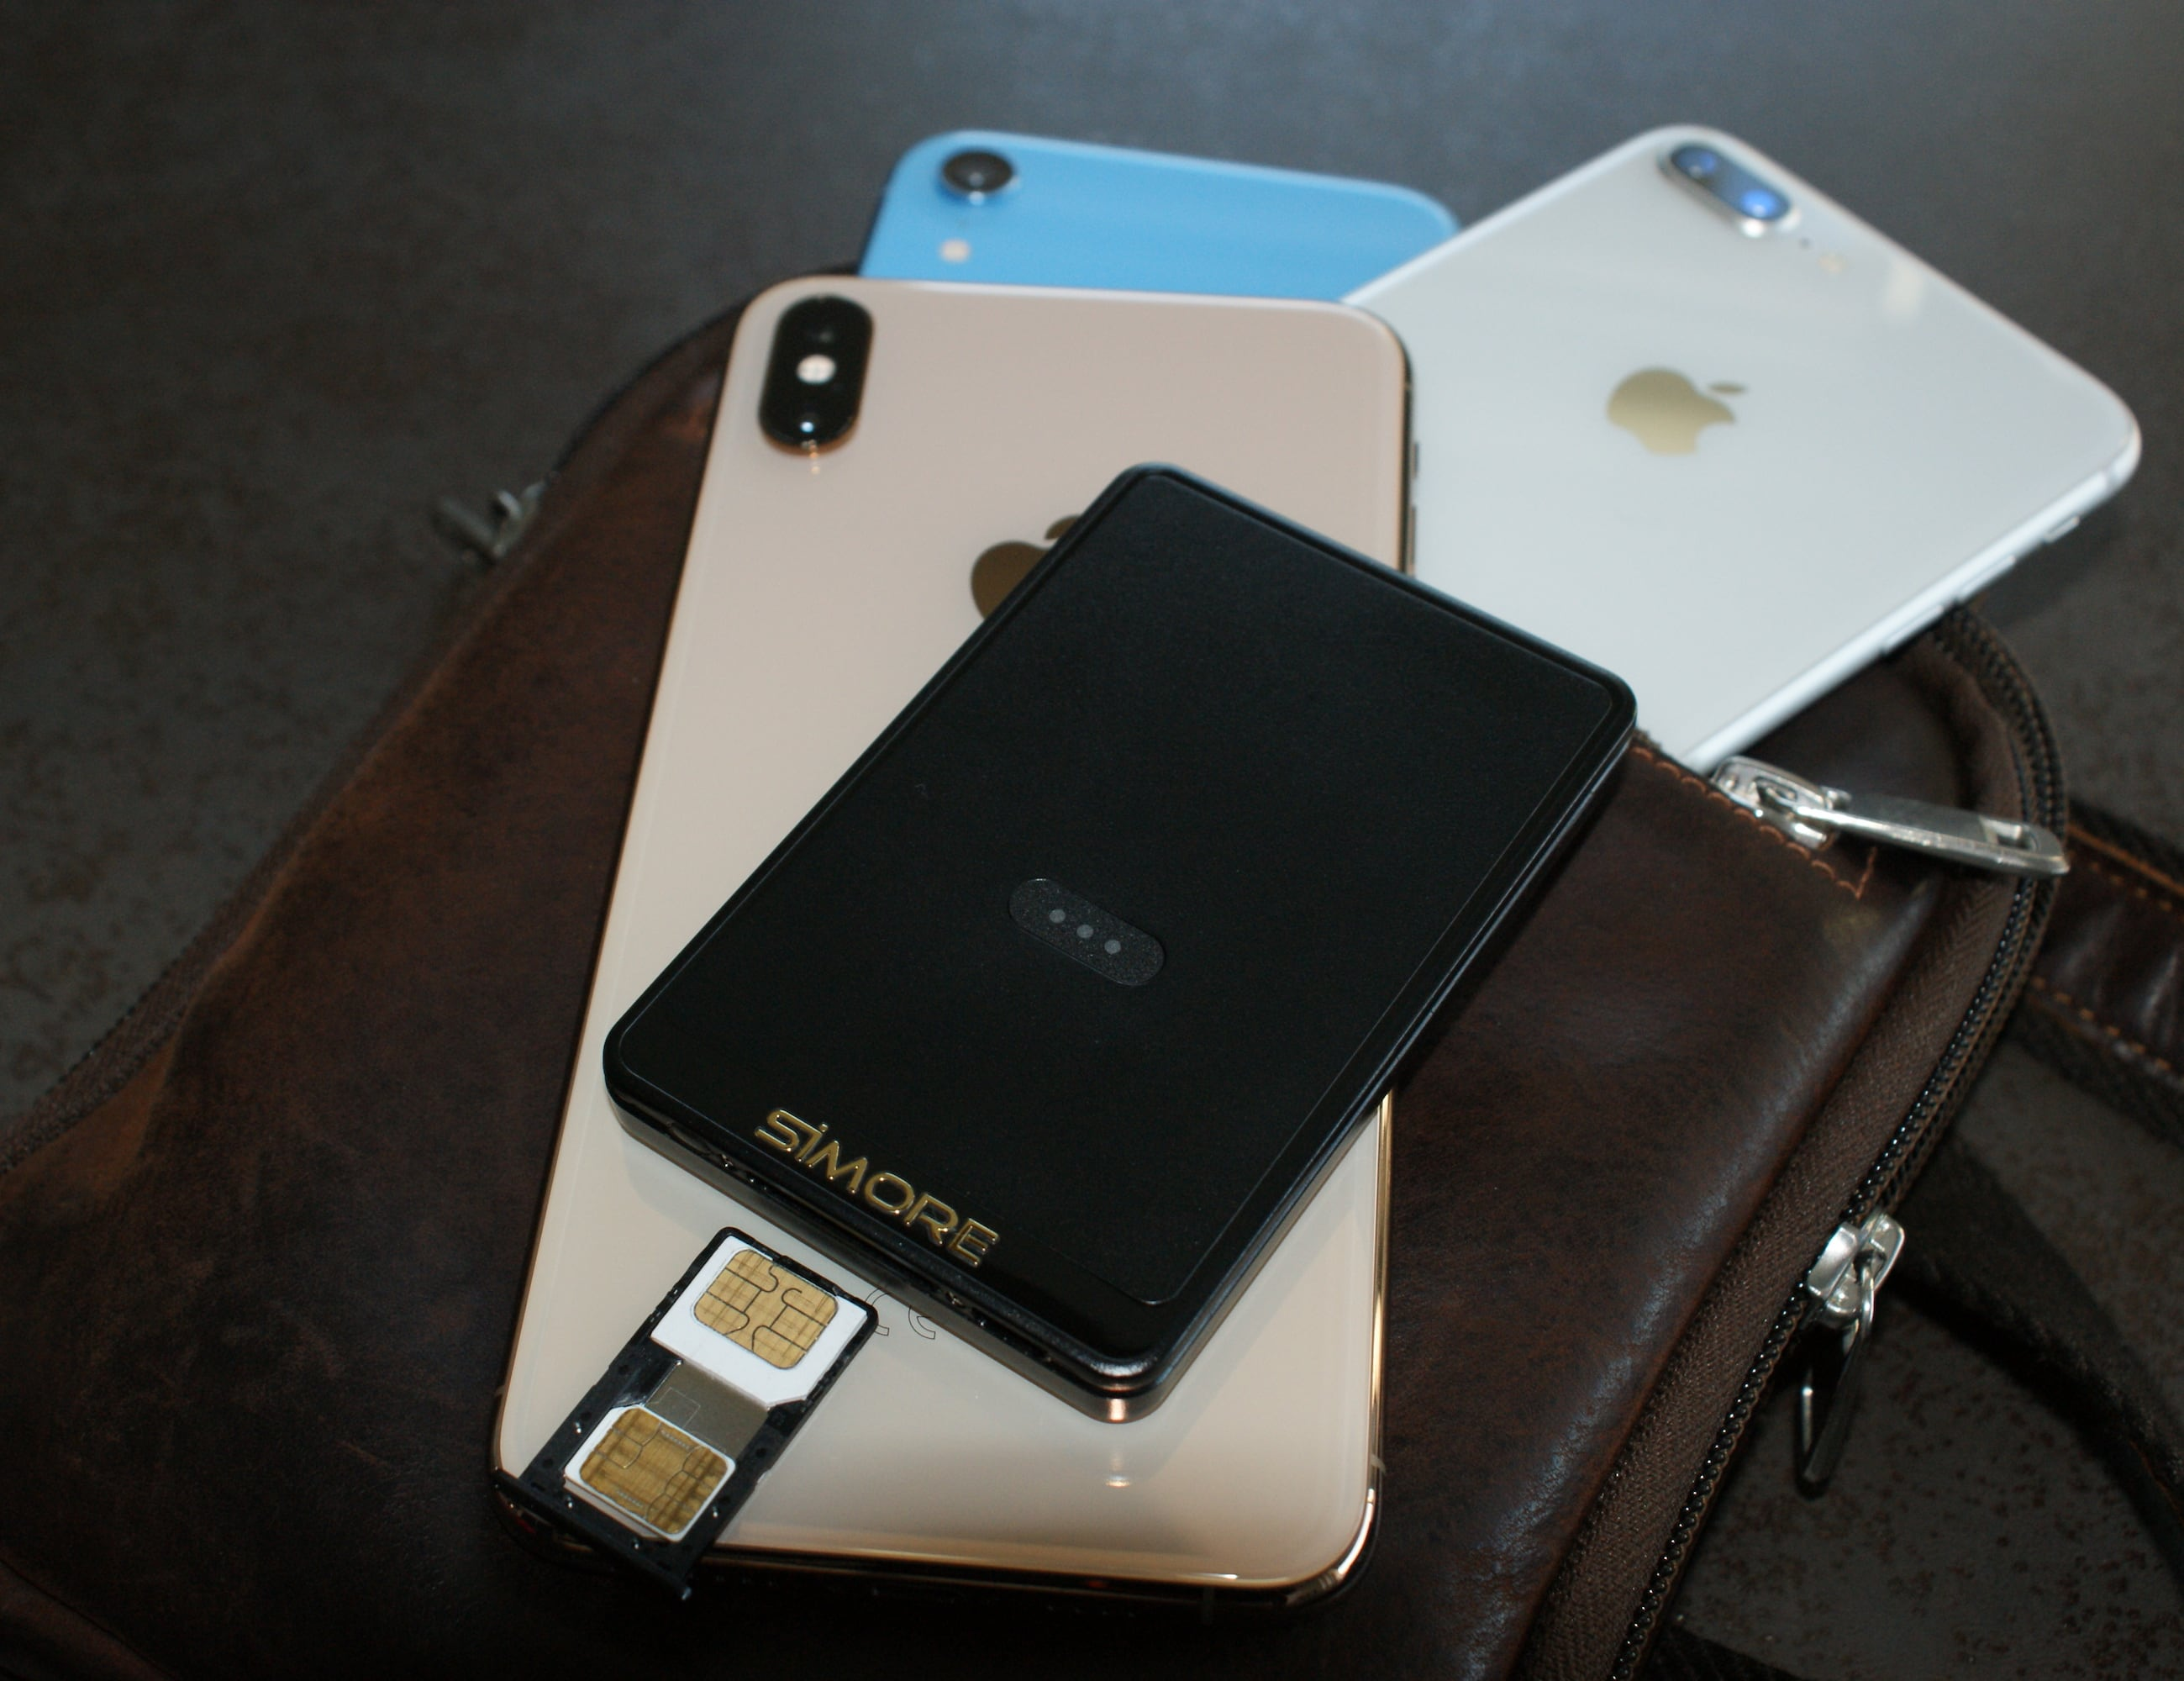 SIMore E-Clips Gold iPhone Dual SIM Adapter